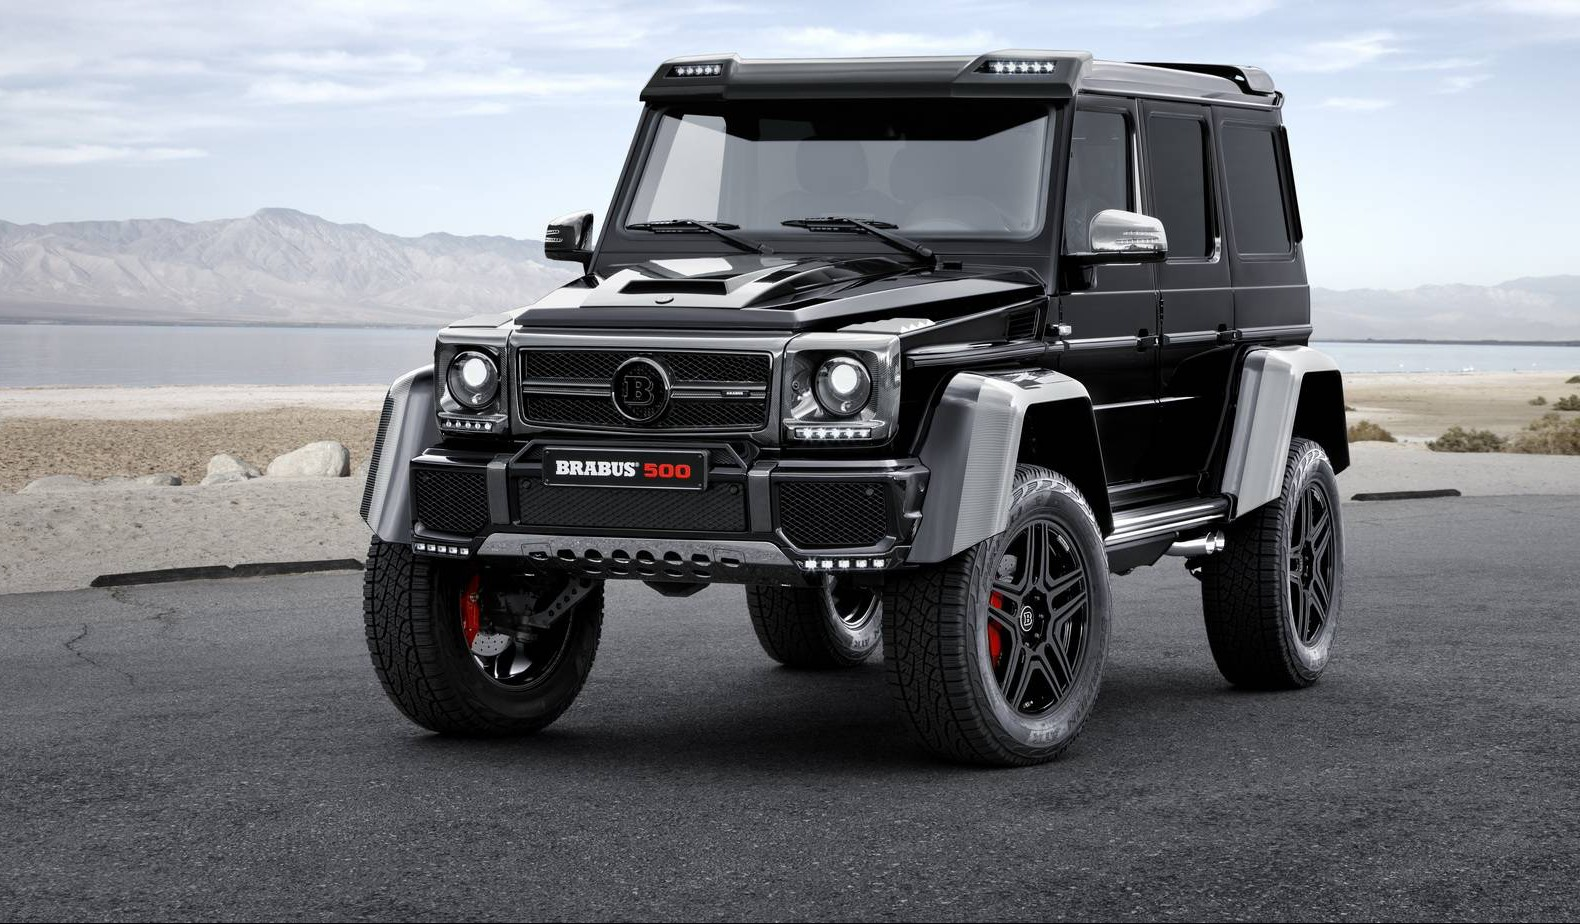 official brabus mercedes benz g500 4x4 gtspirit. Black Bedroom Furniture Sets. Home Design Ideas